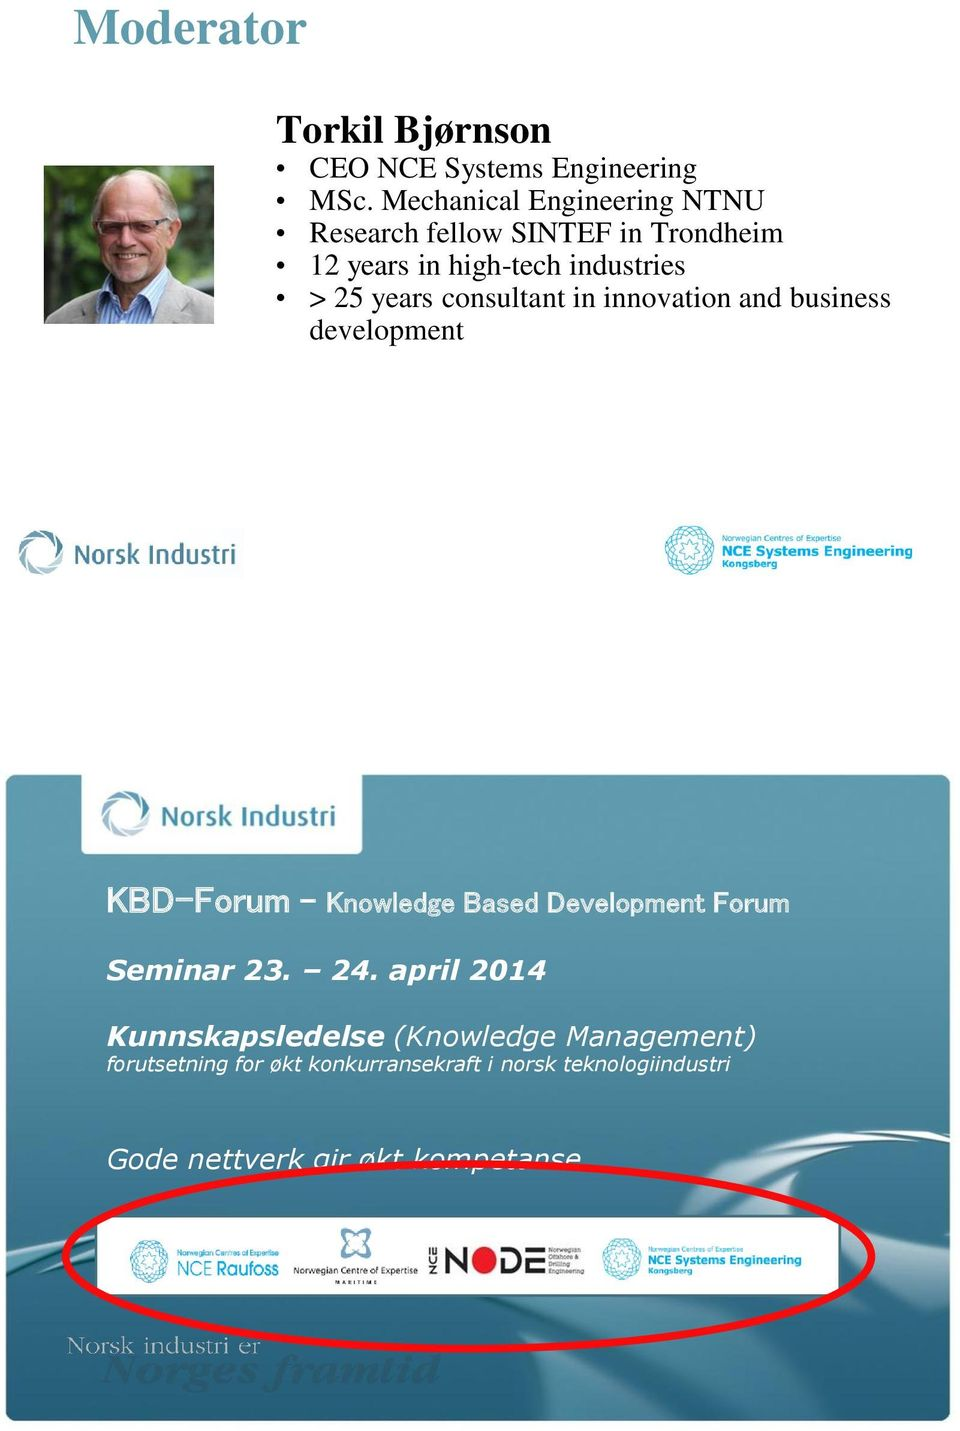 years consultant in innovation and business development KBD-Forum - Knowledge Based Development Forum